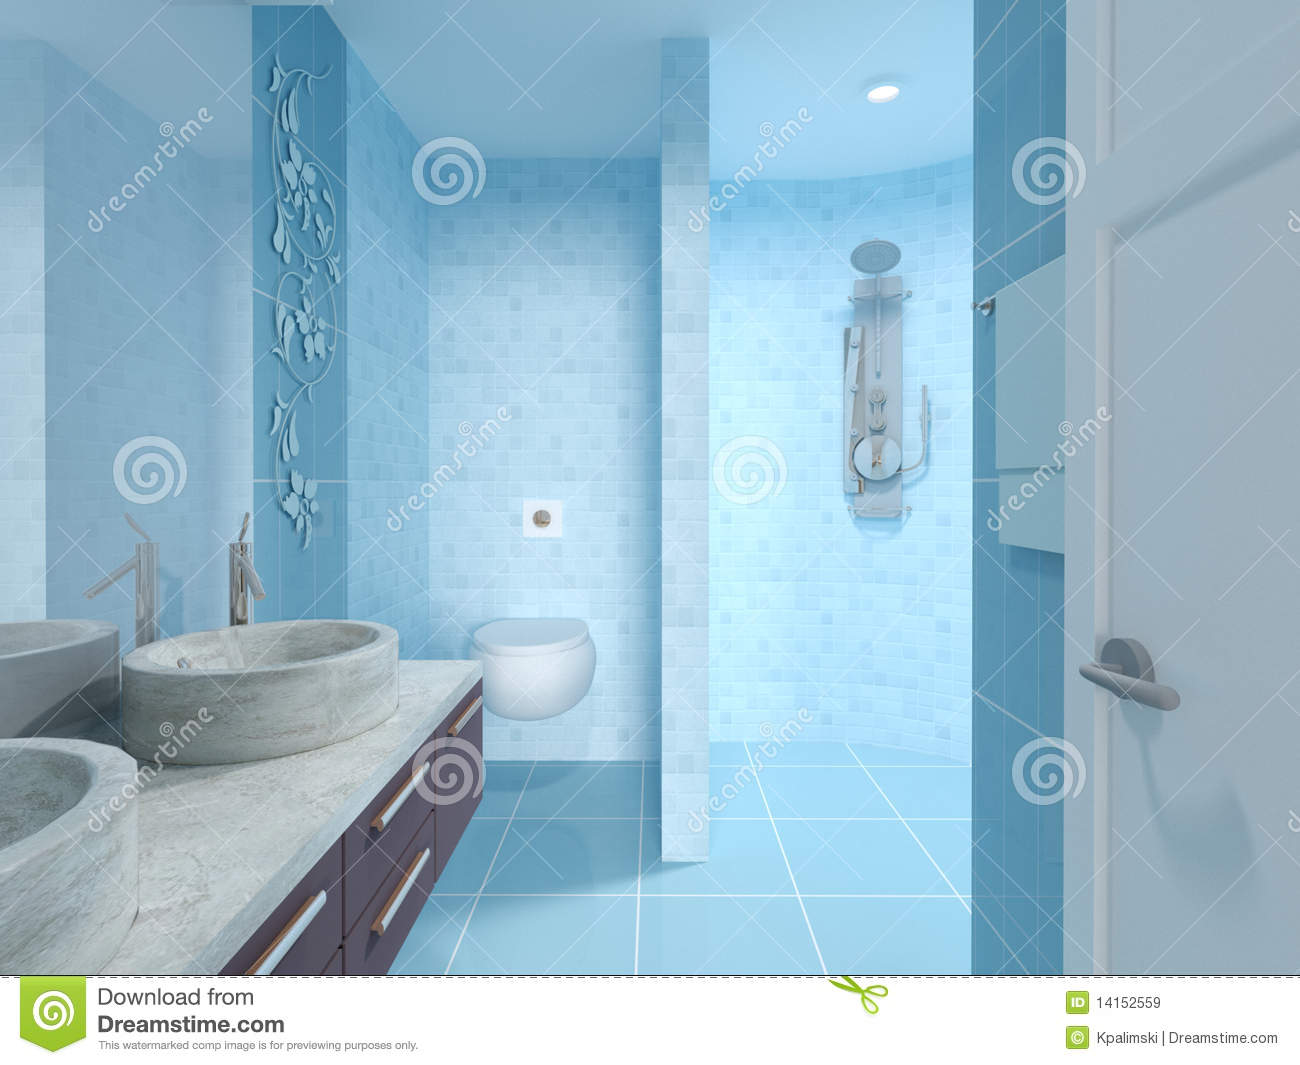 Royalty Free Stock Photo Bathroom Blue Design Interior